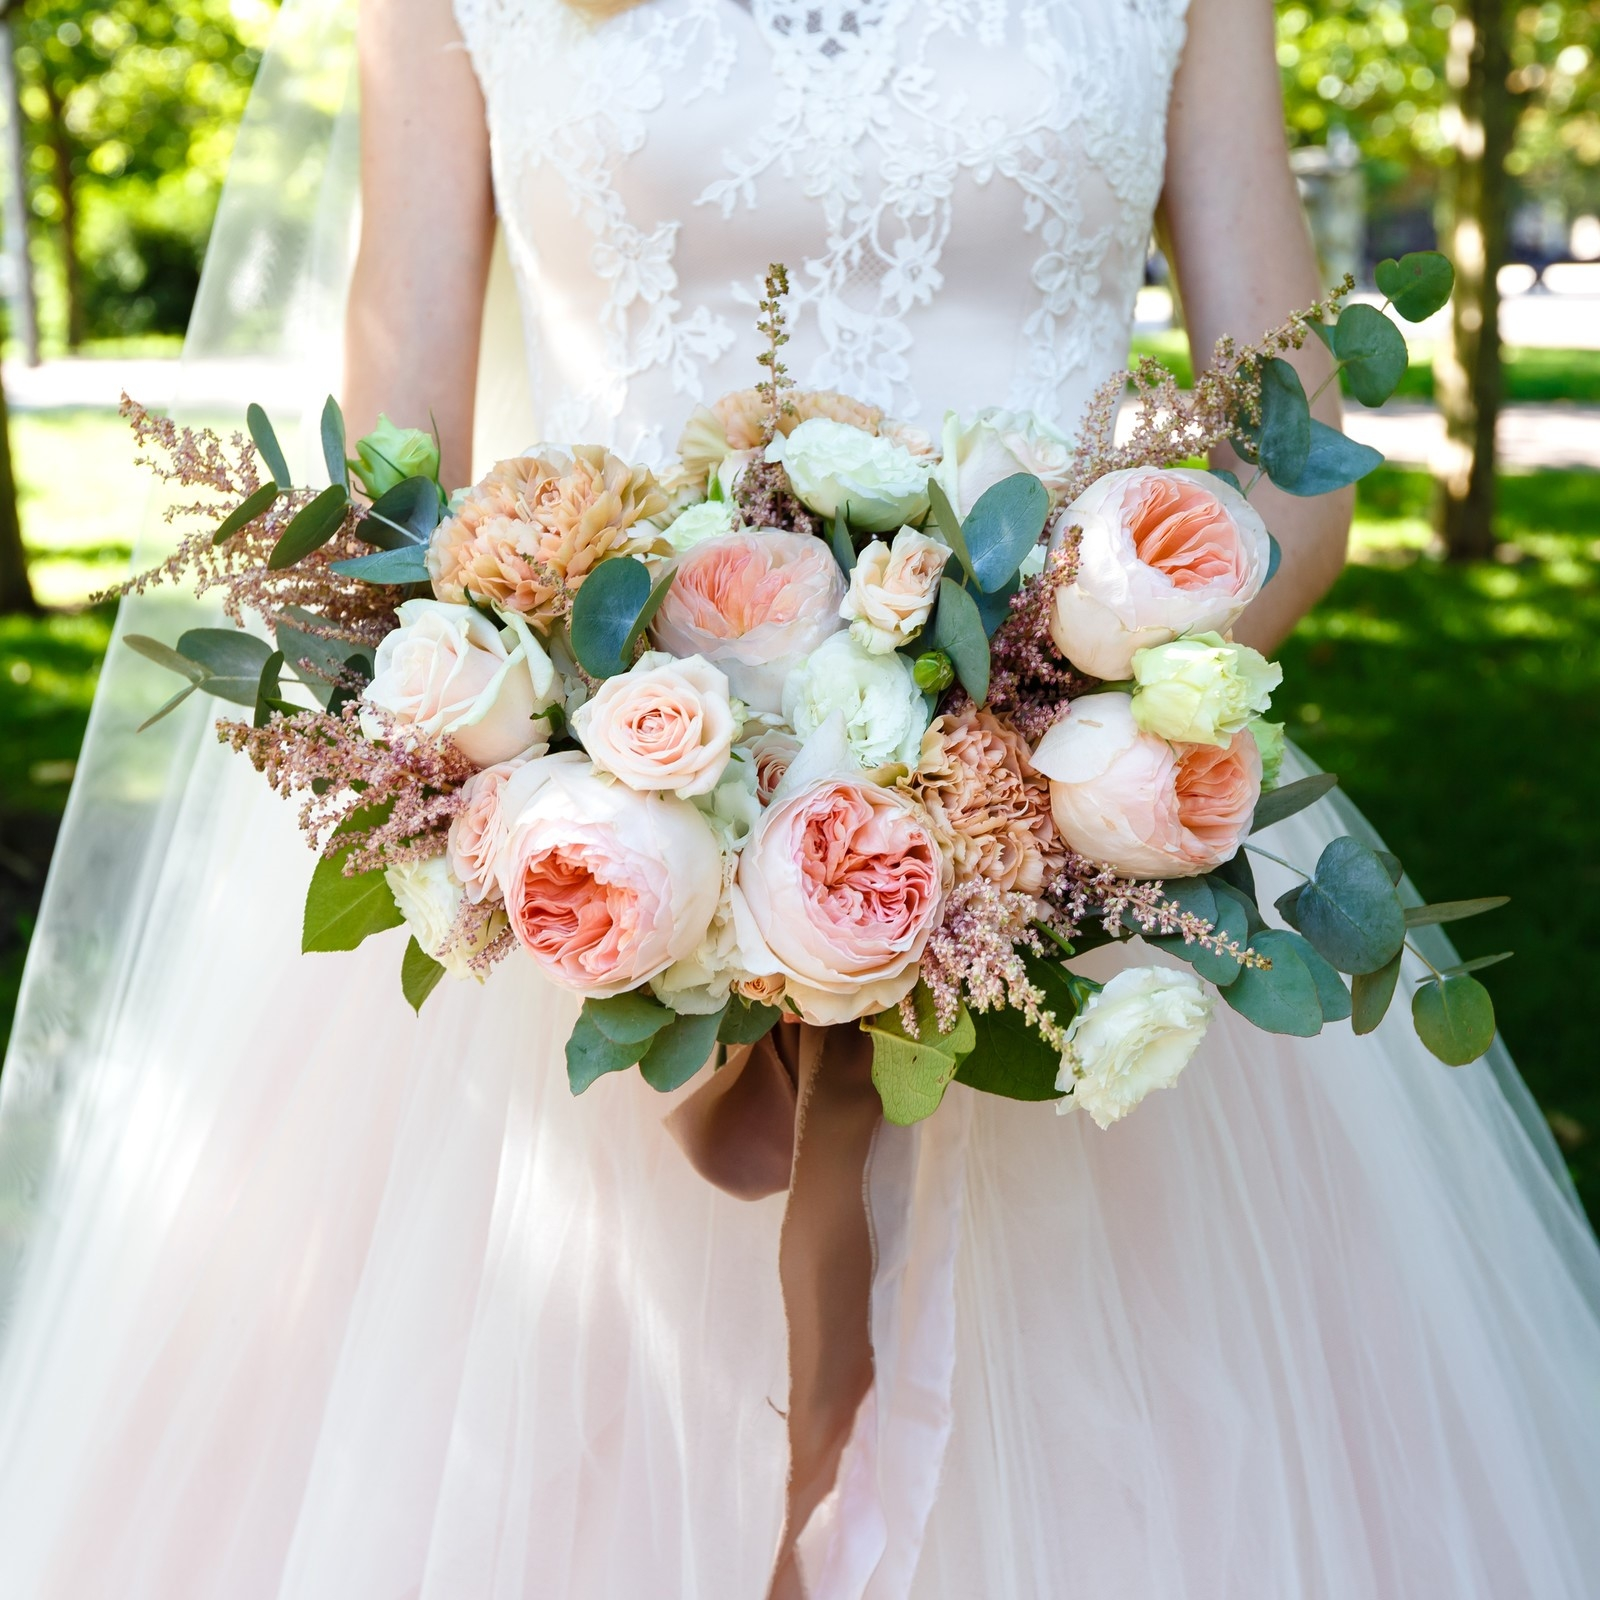 Wholesale-wedding-flowers-packages-bouquet-pink